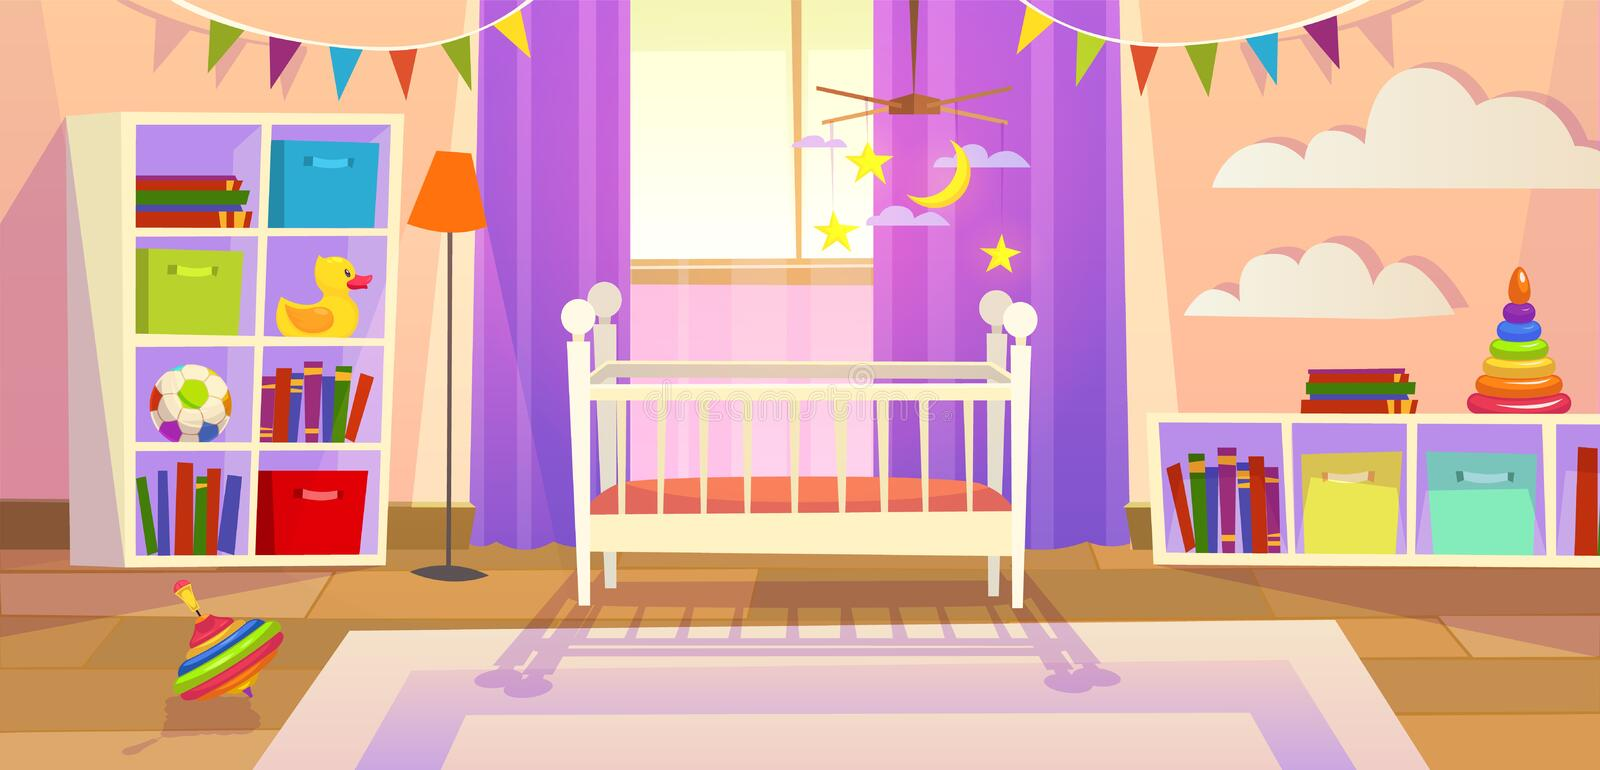 Baby room. Interior nursery bedroom newborn furniture cot children toys family lifestyle kid playroom, cartoon image royalty free illustration